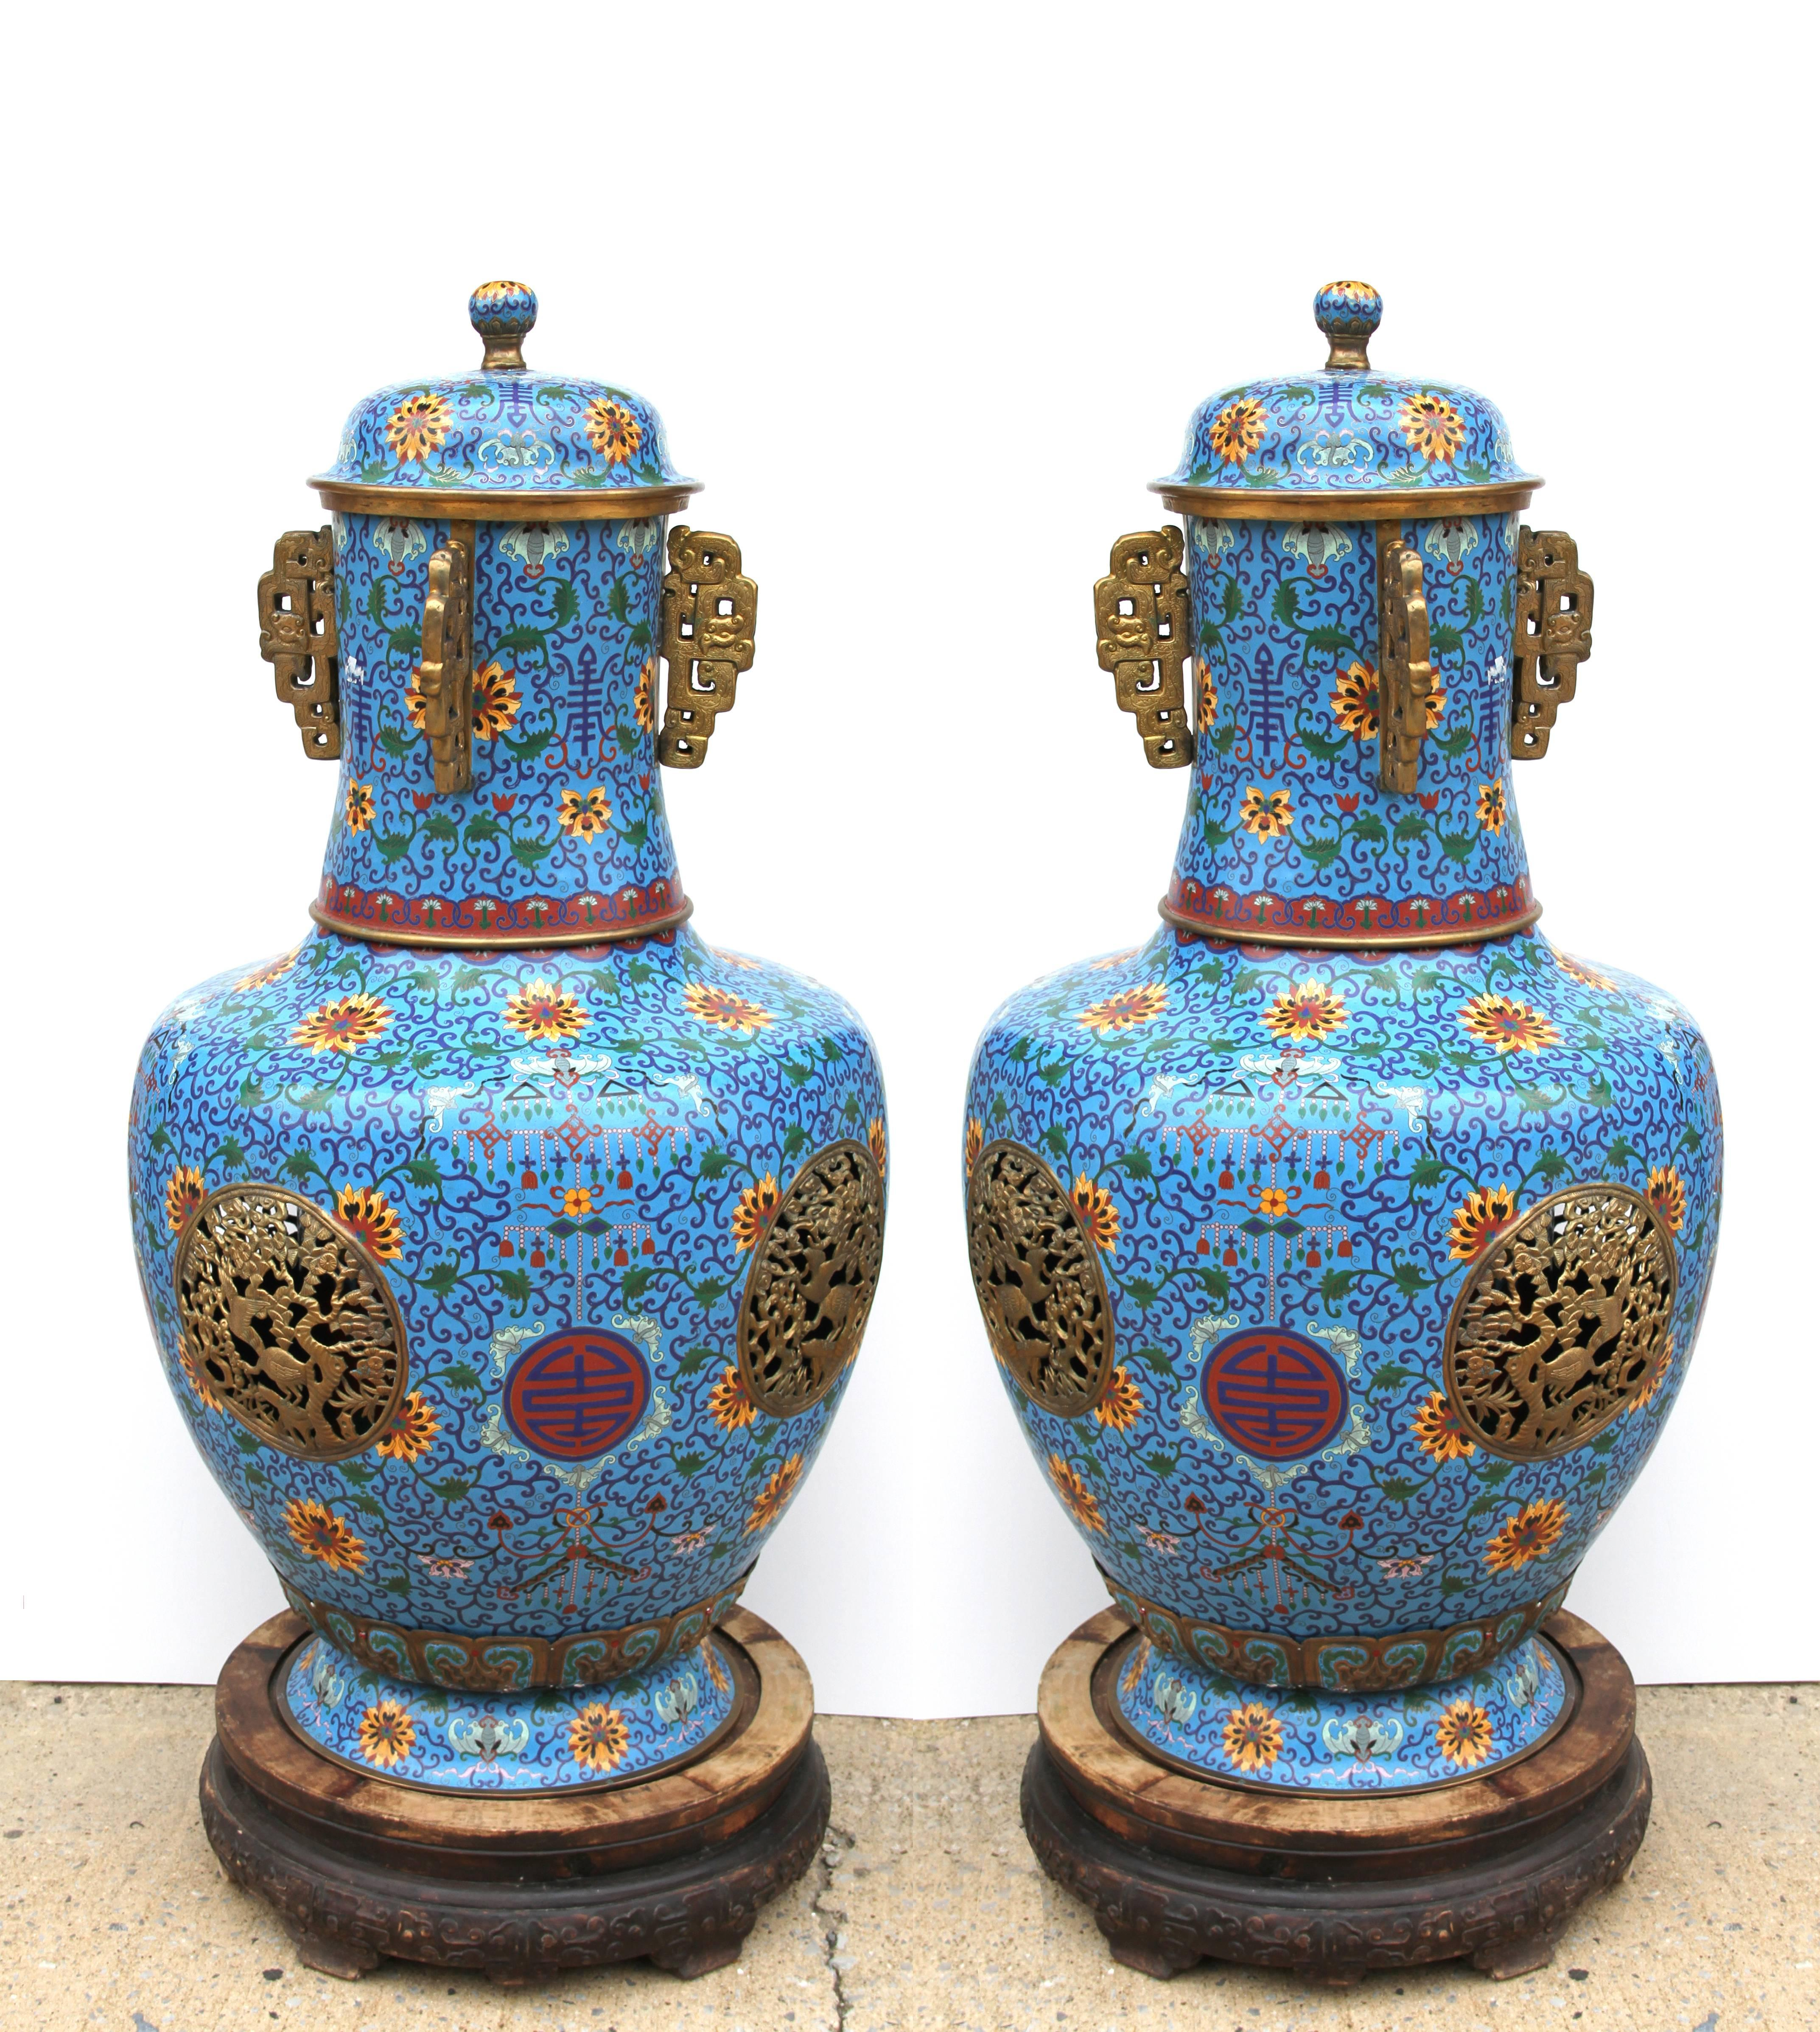 Pair of Chinese Cloisonne Tall Incense Urns (Censers)